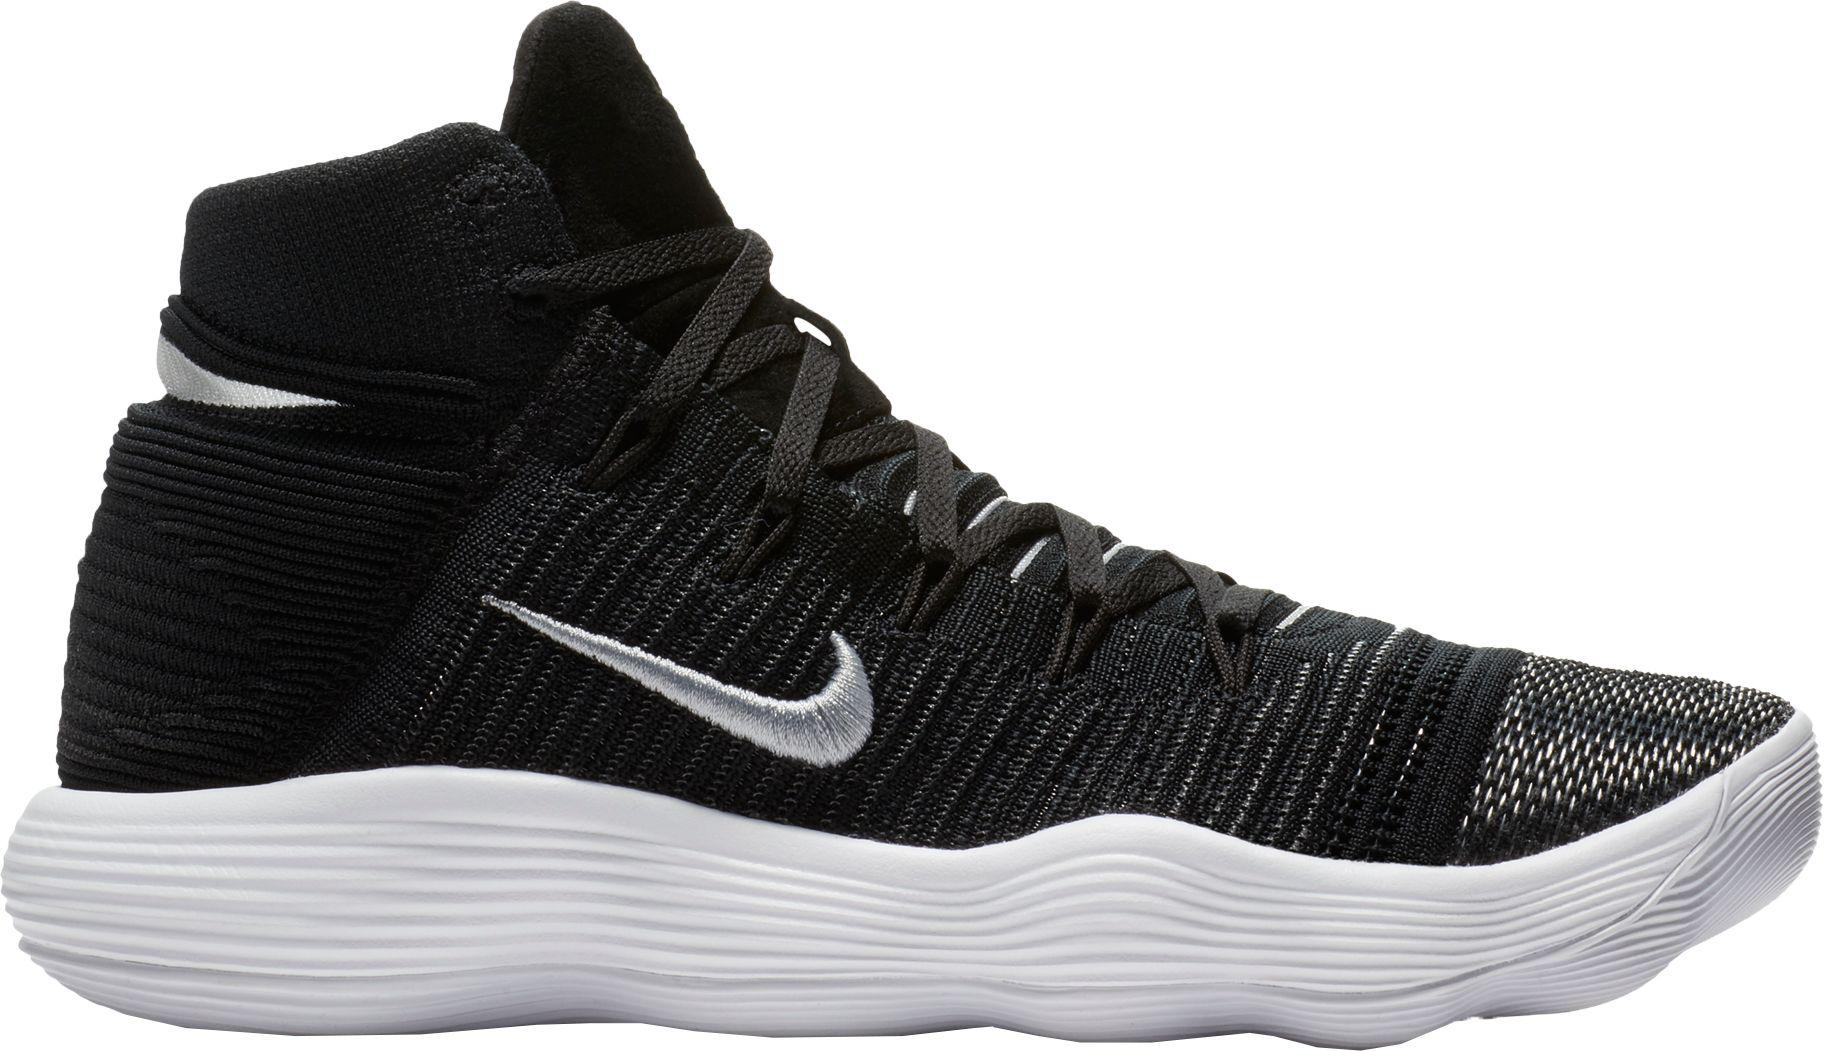 Mens Dunk Flyknit Basketball Shoes Nike eP7LqGJA